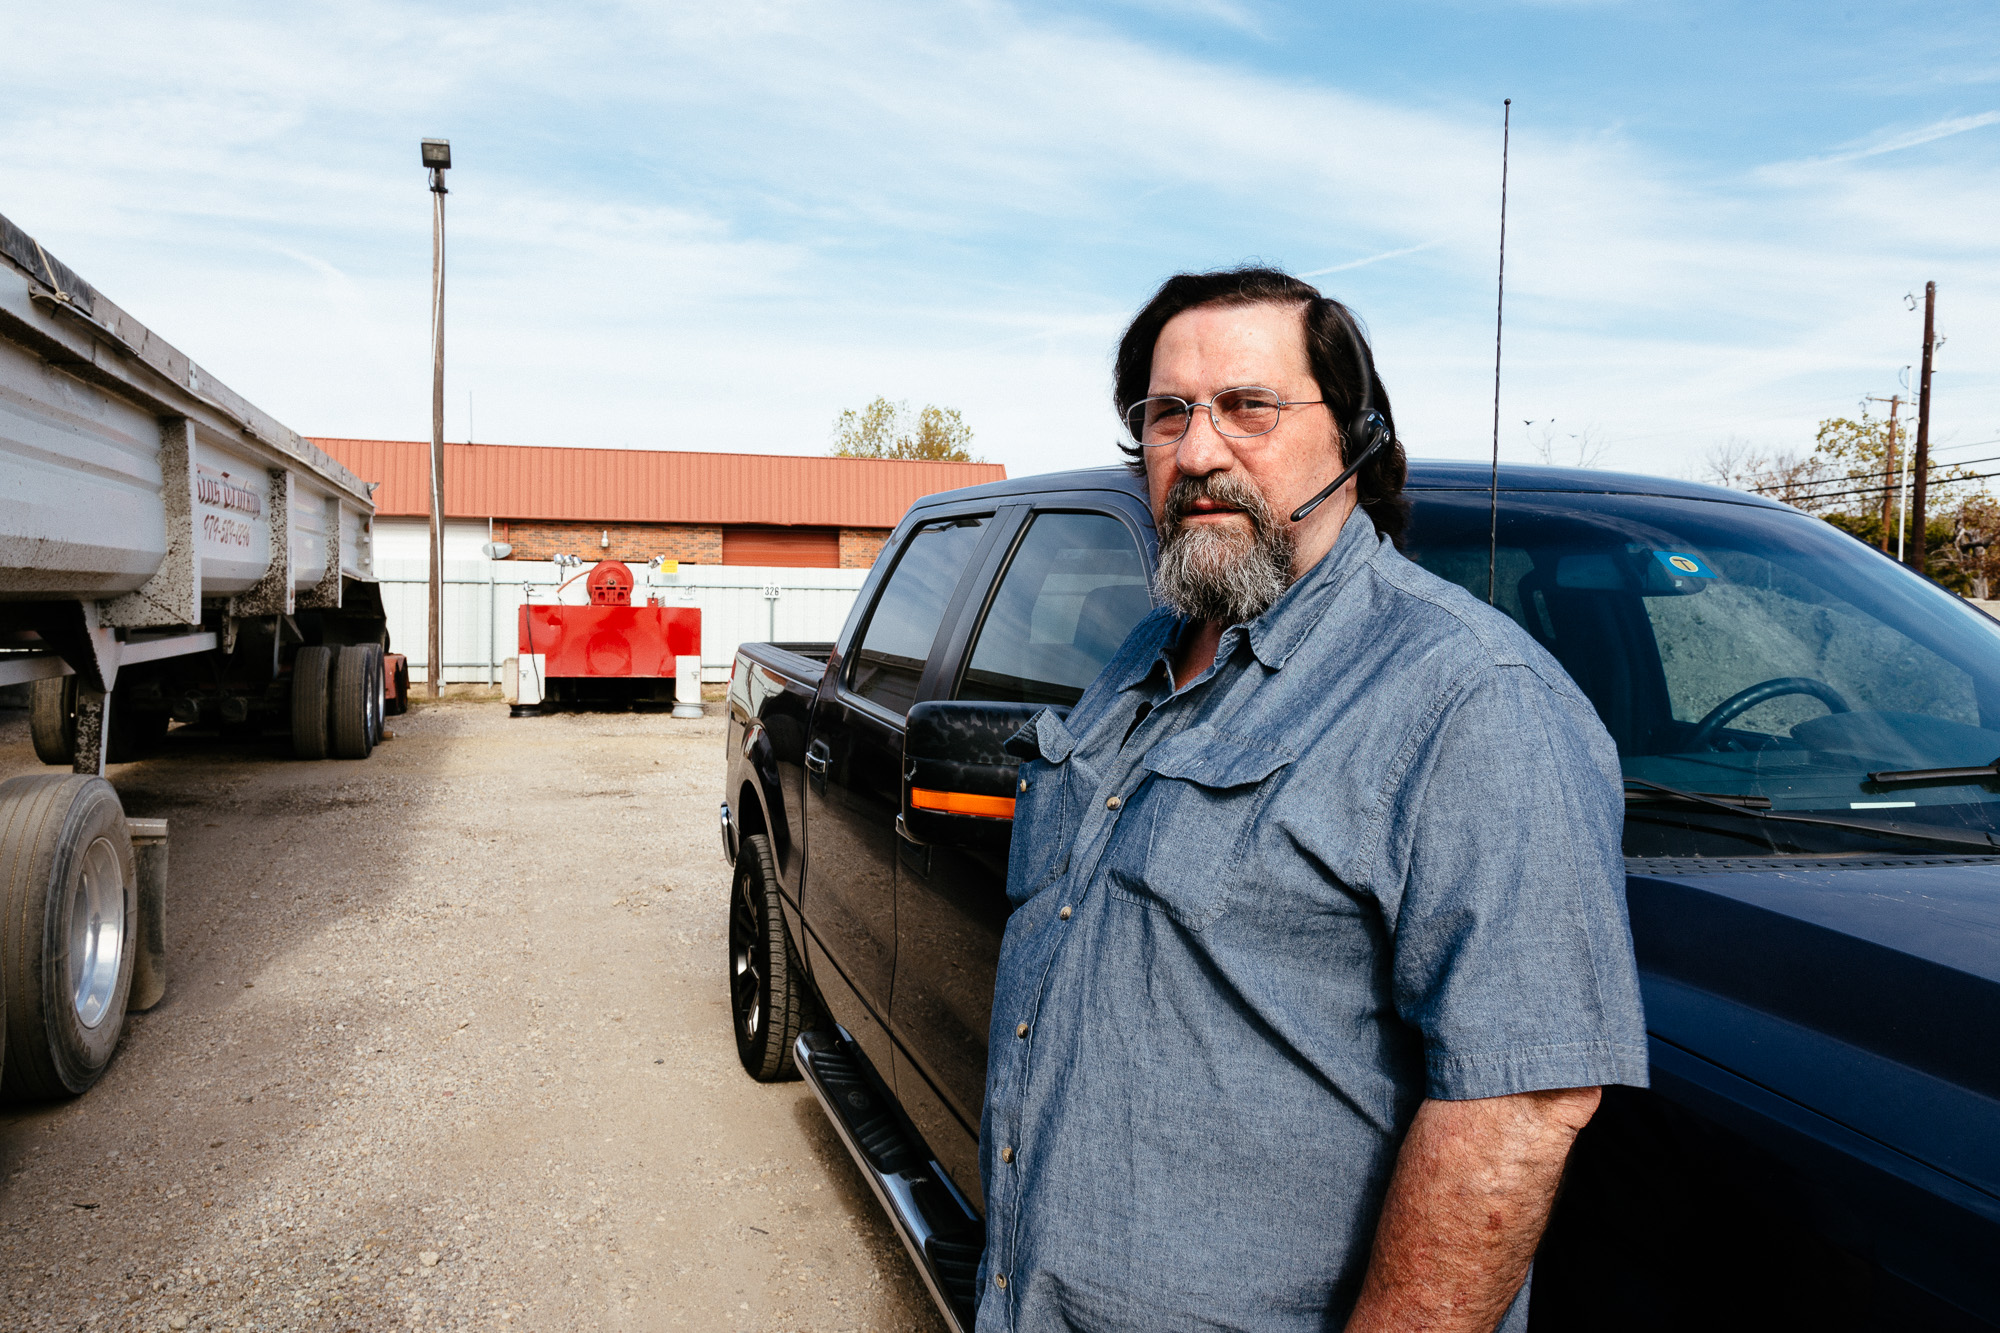 Richard stands by is truck located in Dallas, Texas.